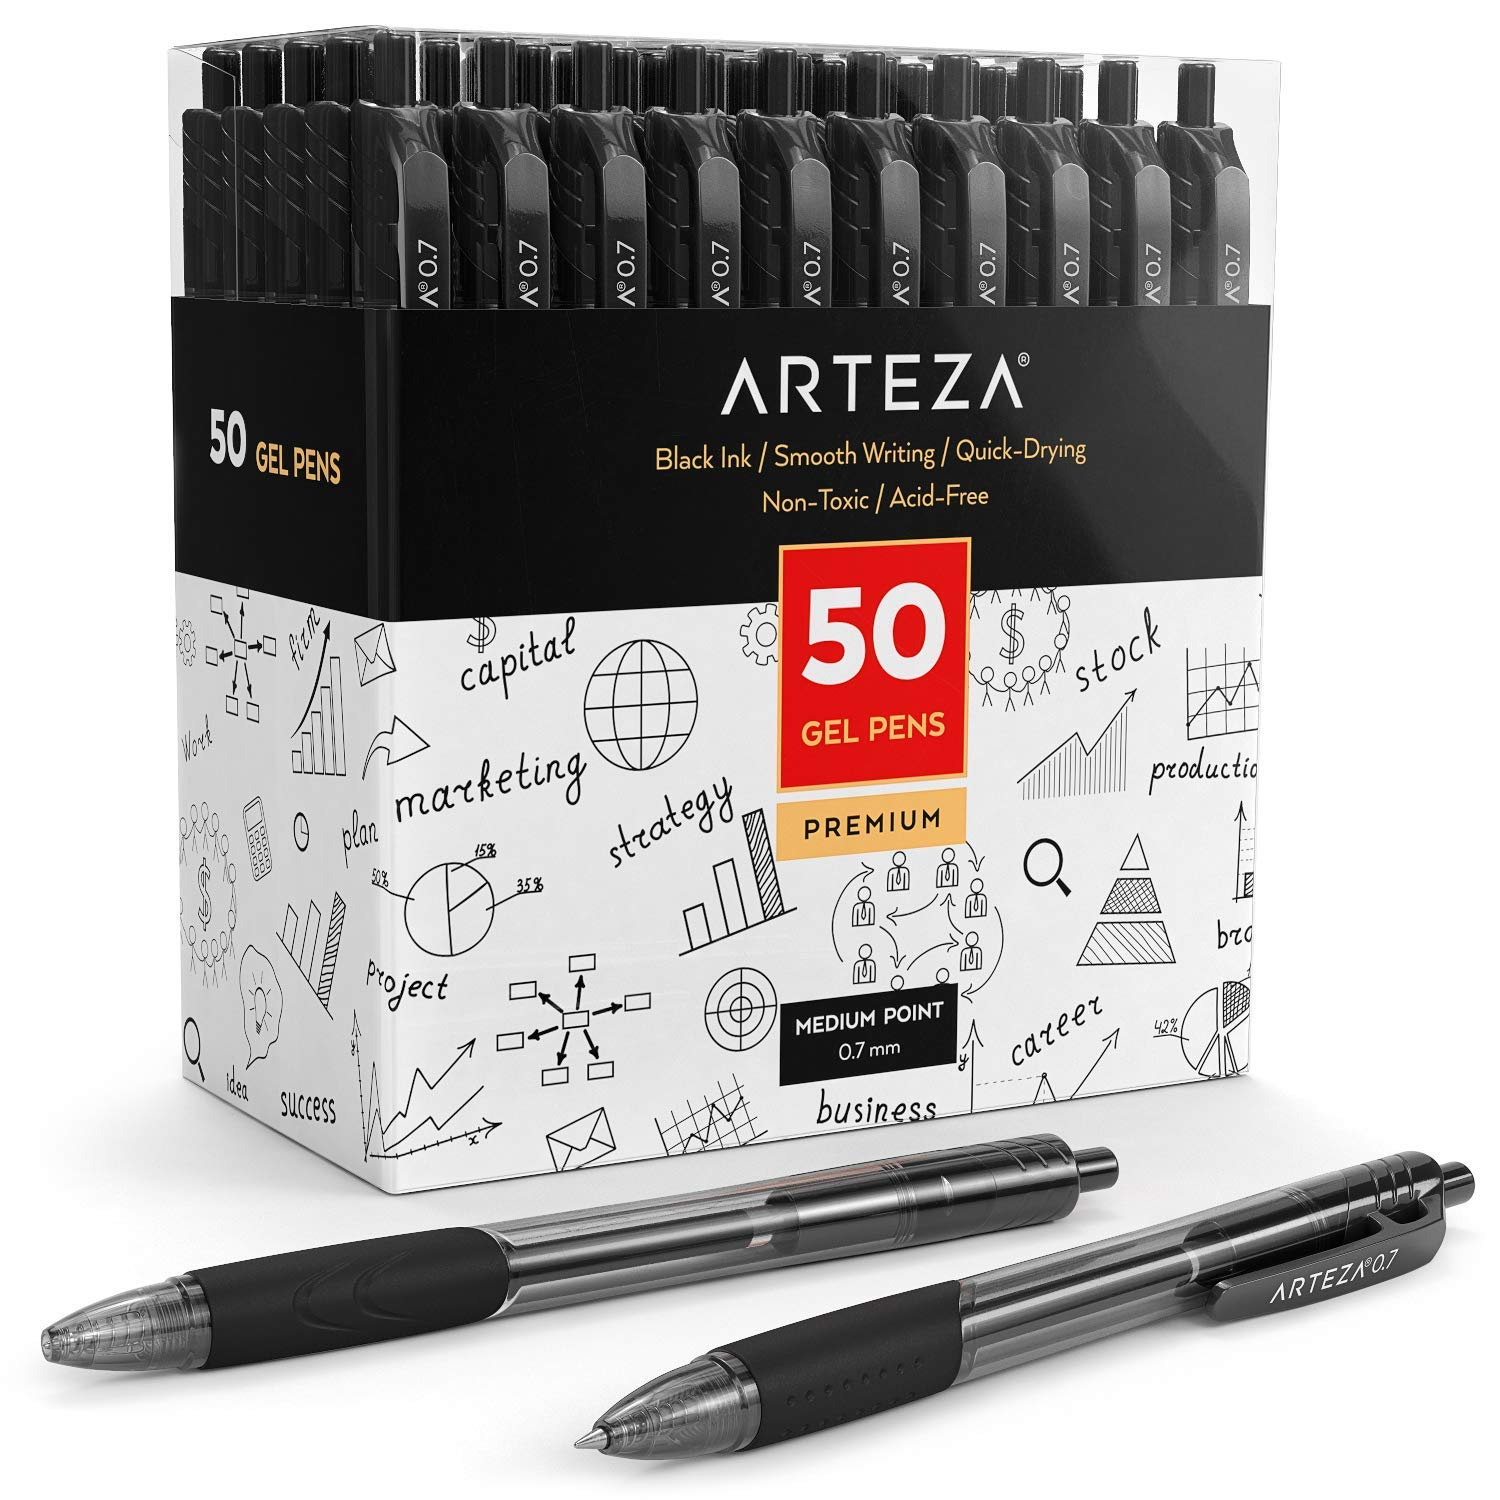 Arteza Gel Ink Roller Ball Retractable Pens, Set of 50 Quick Drying Black Gel Pens for Work, Writing, Note-Taking, Studying, Journaling & Sketching by ARTEZA